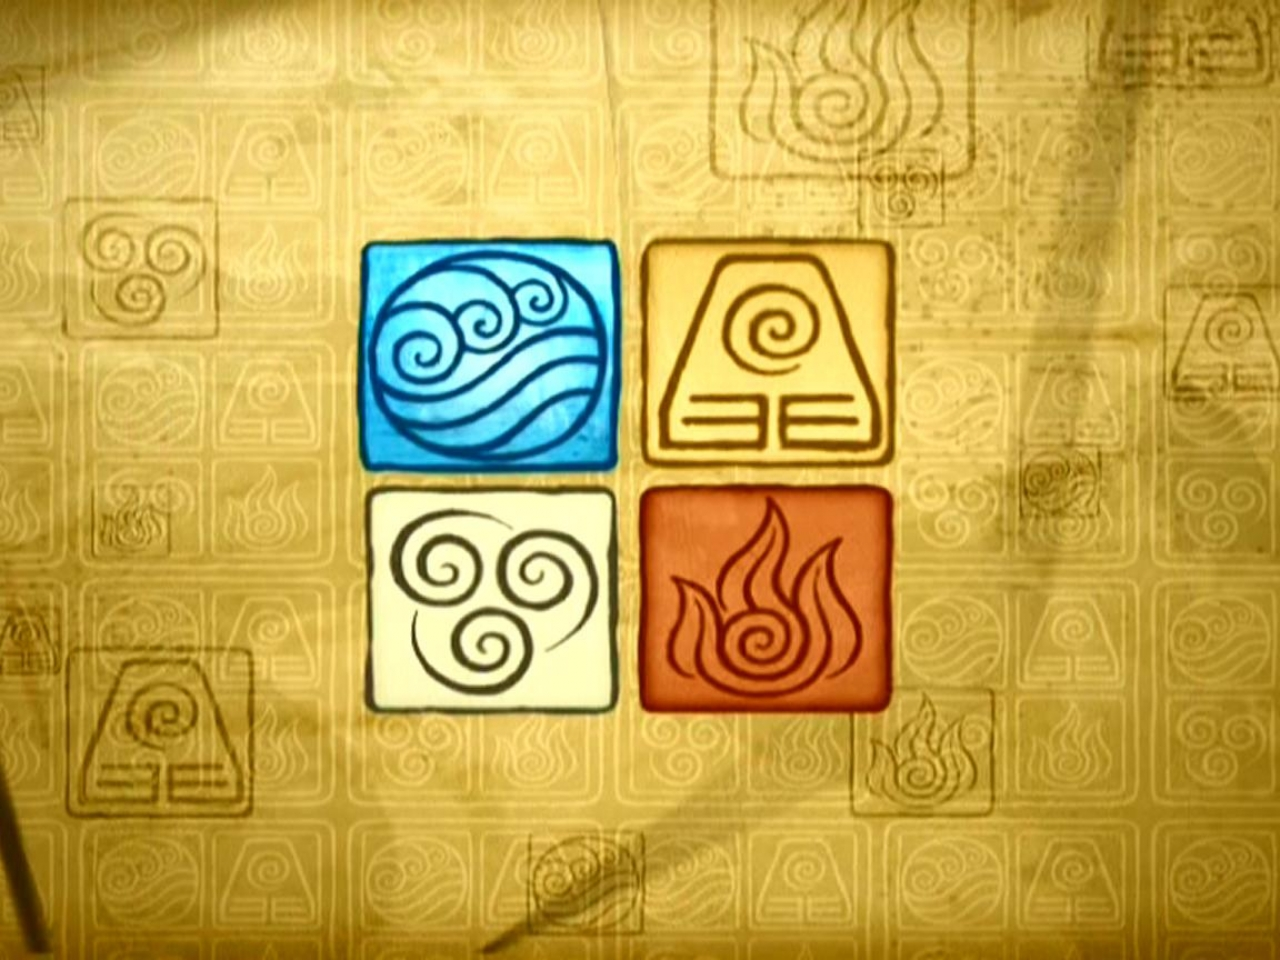 The Five Element Symbols of Fire Water Air Earth Spirit